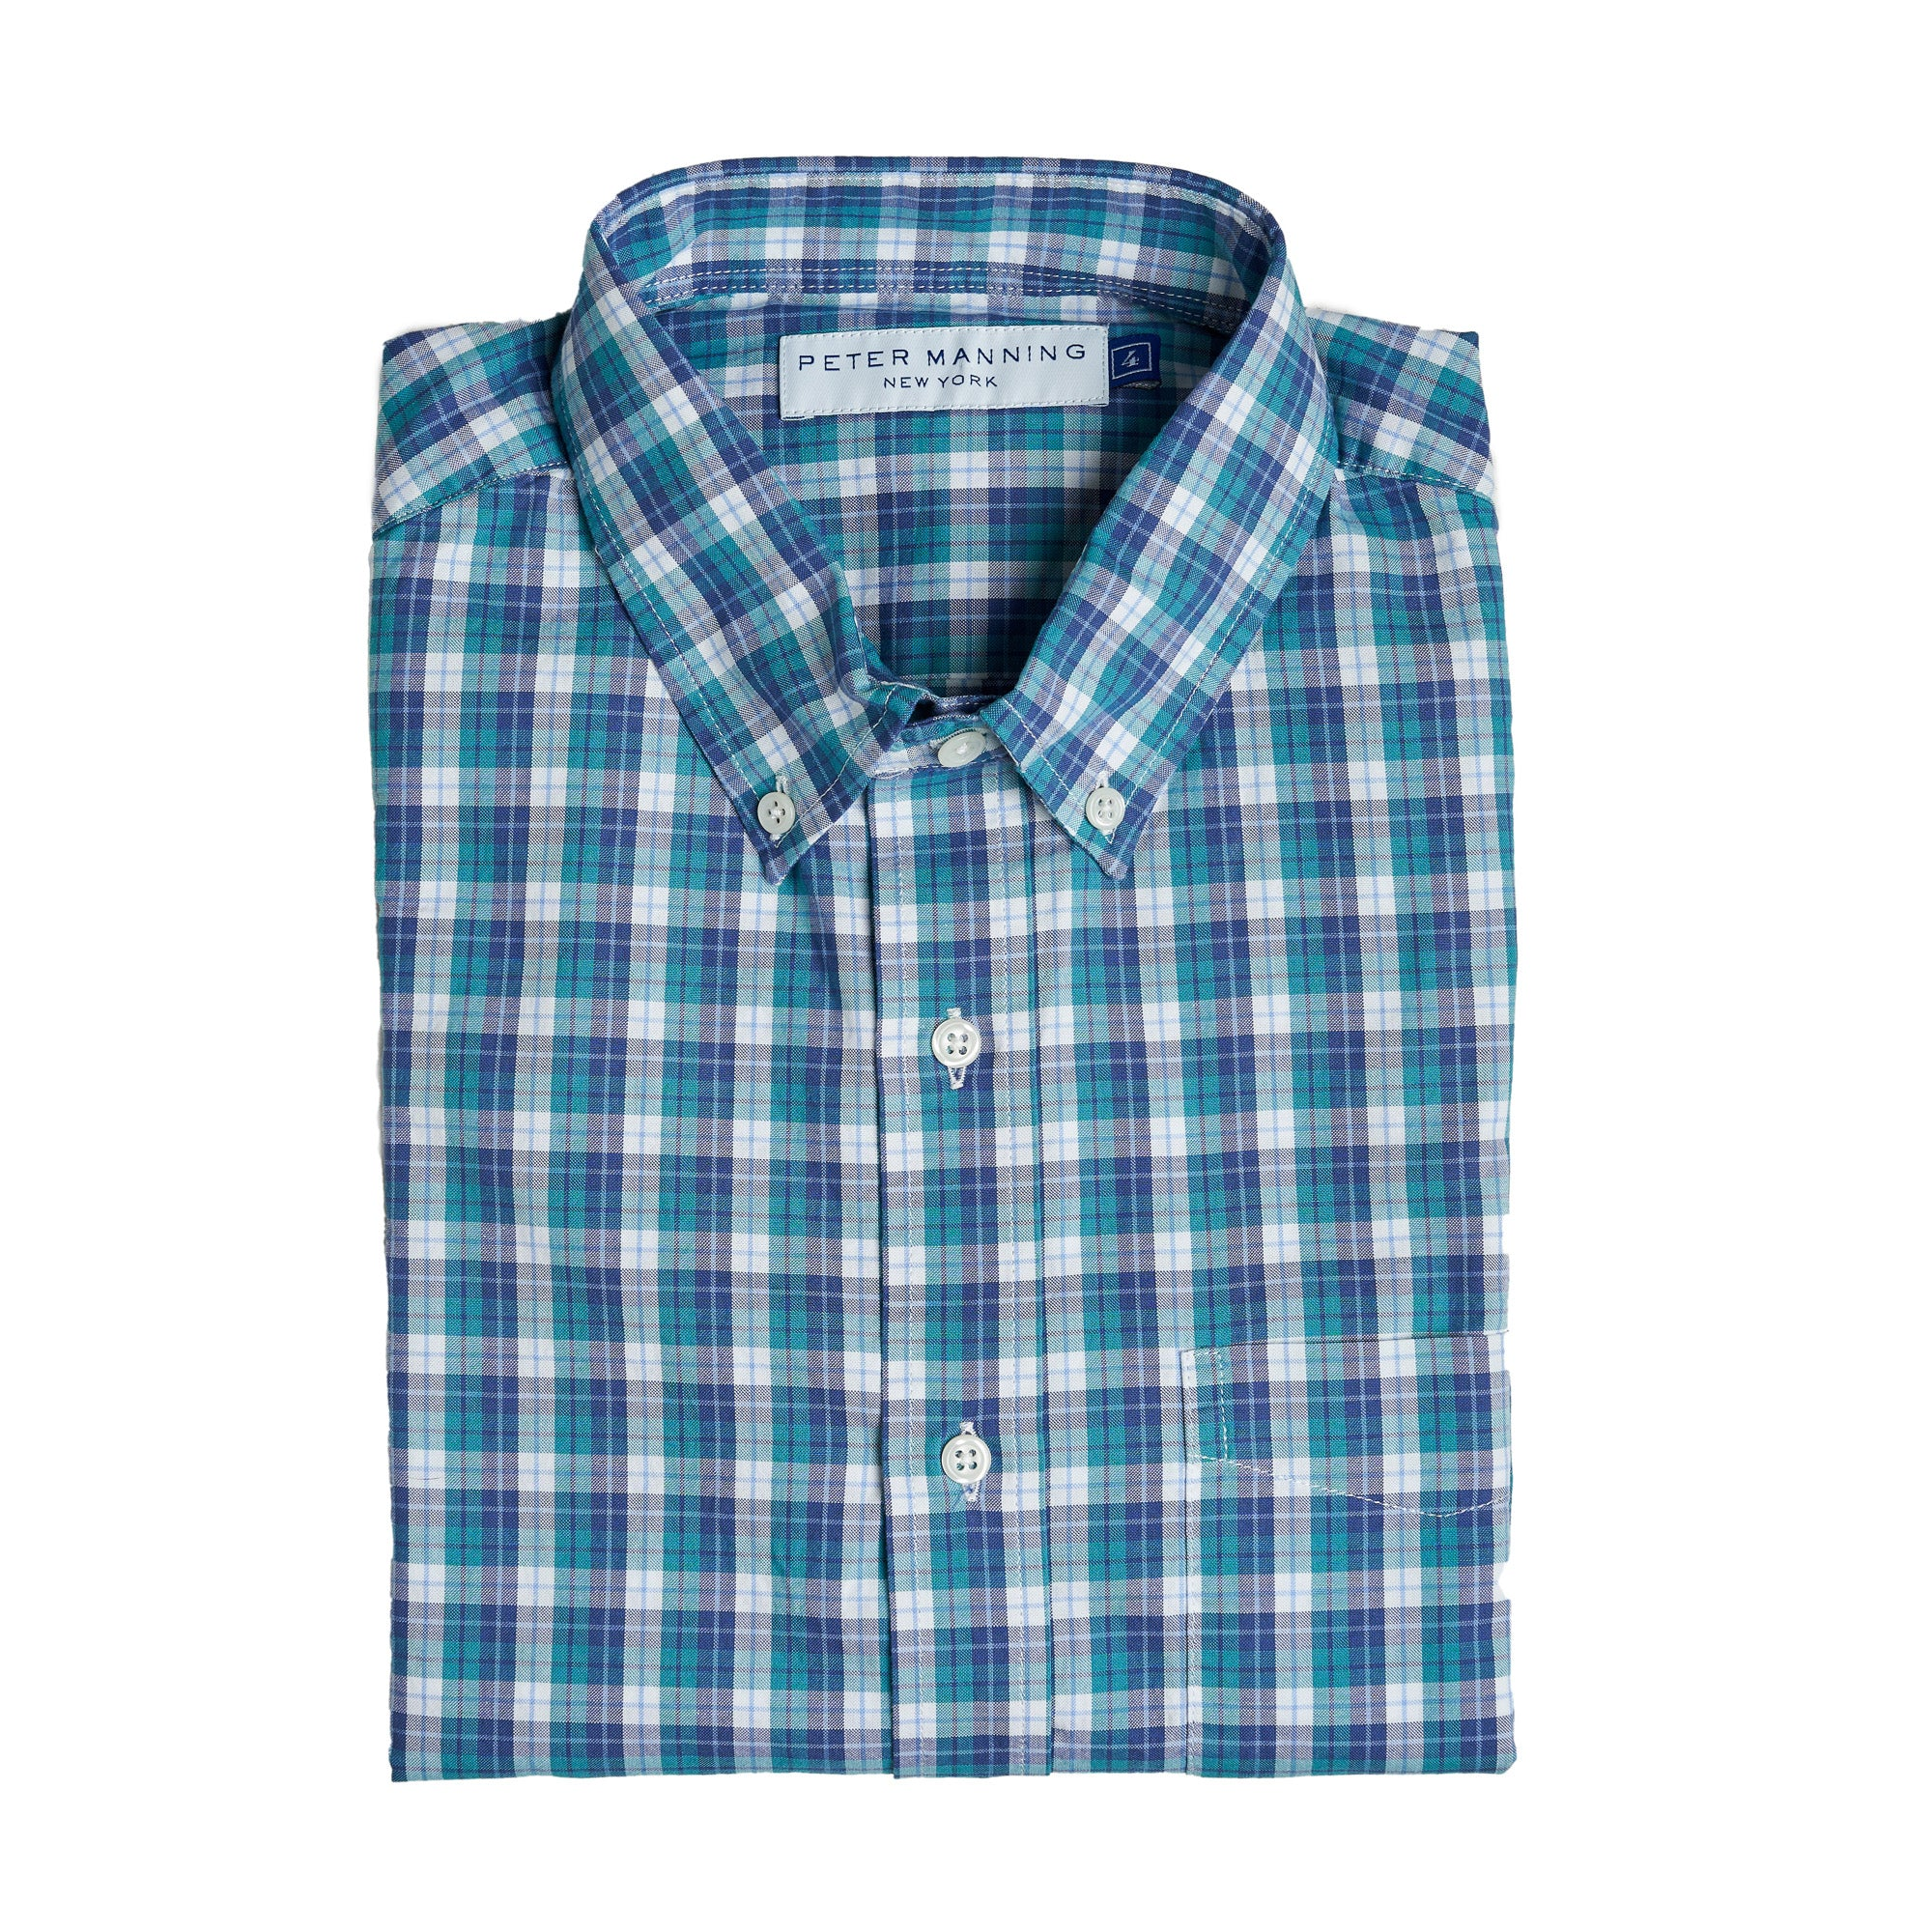 Everyday Oxford - Navy Aqua Tattersall